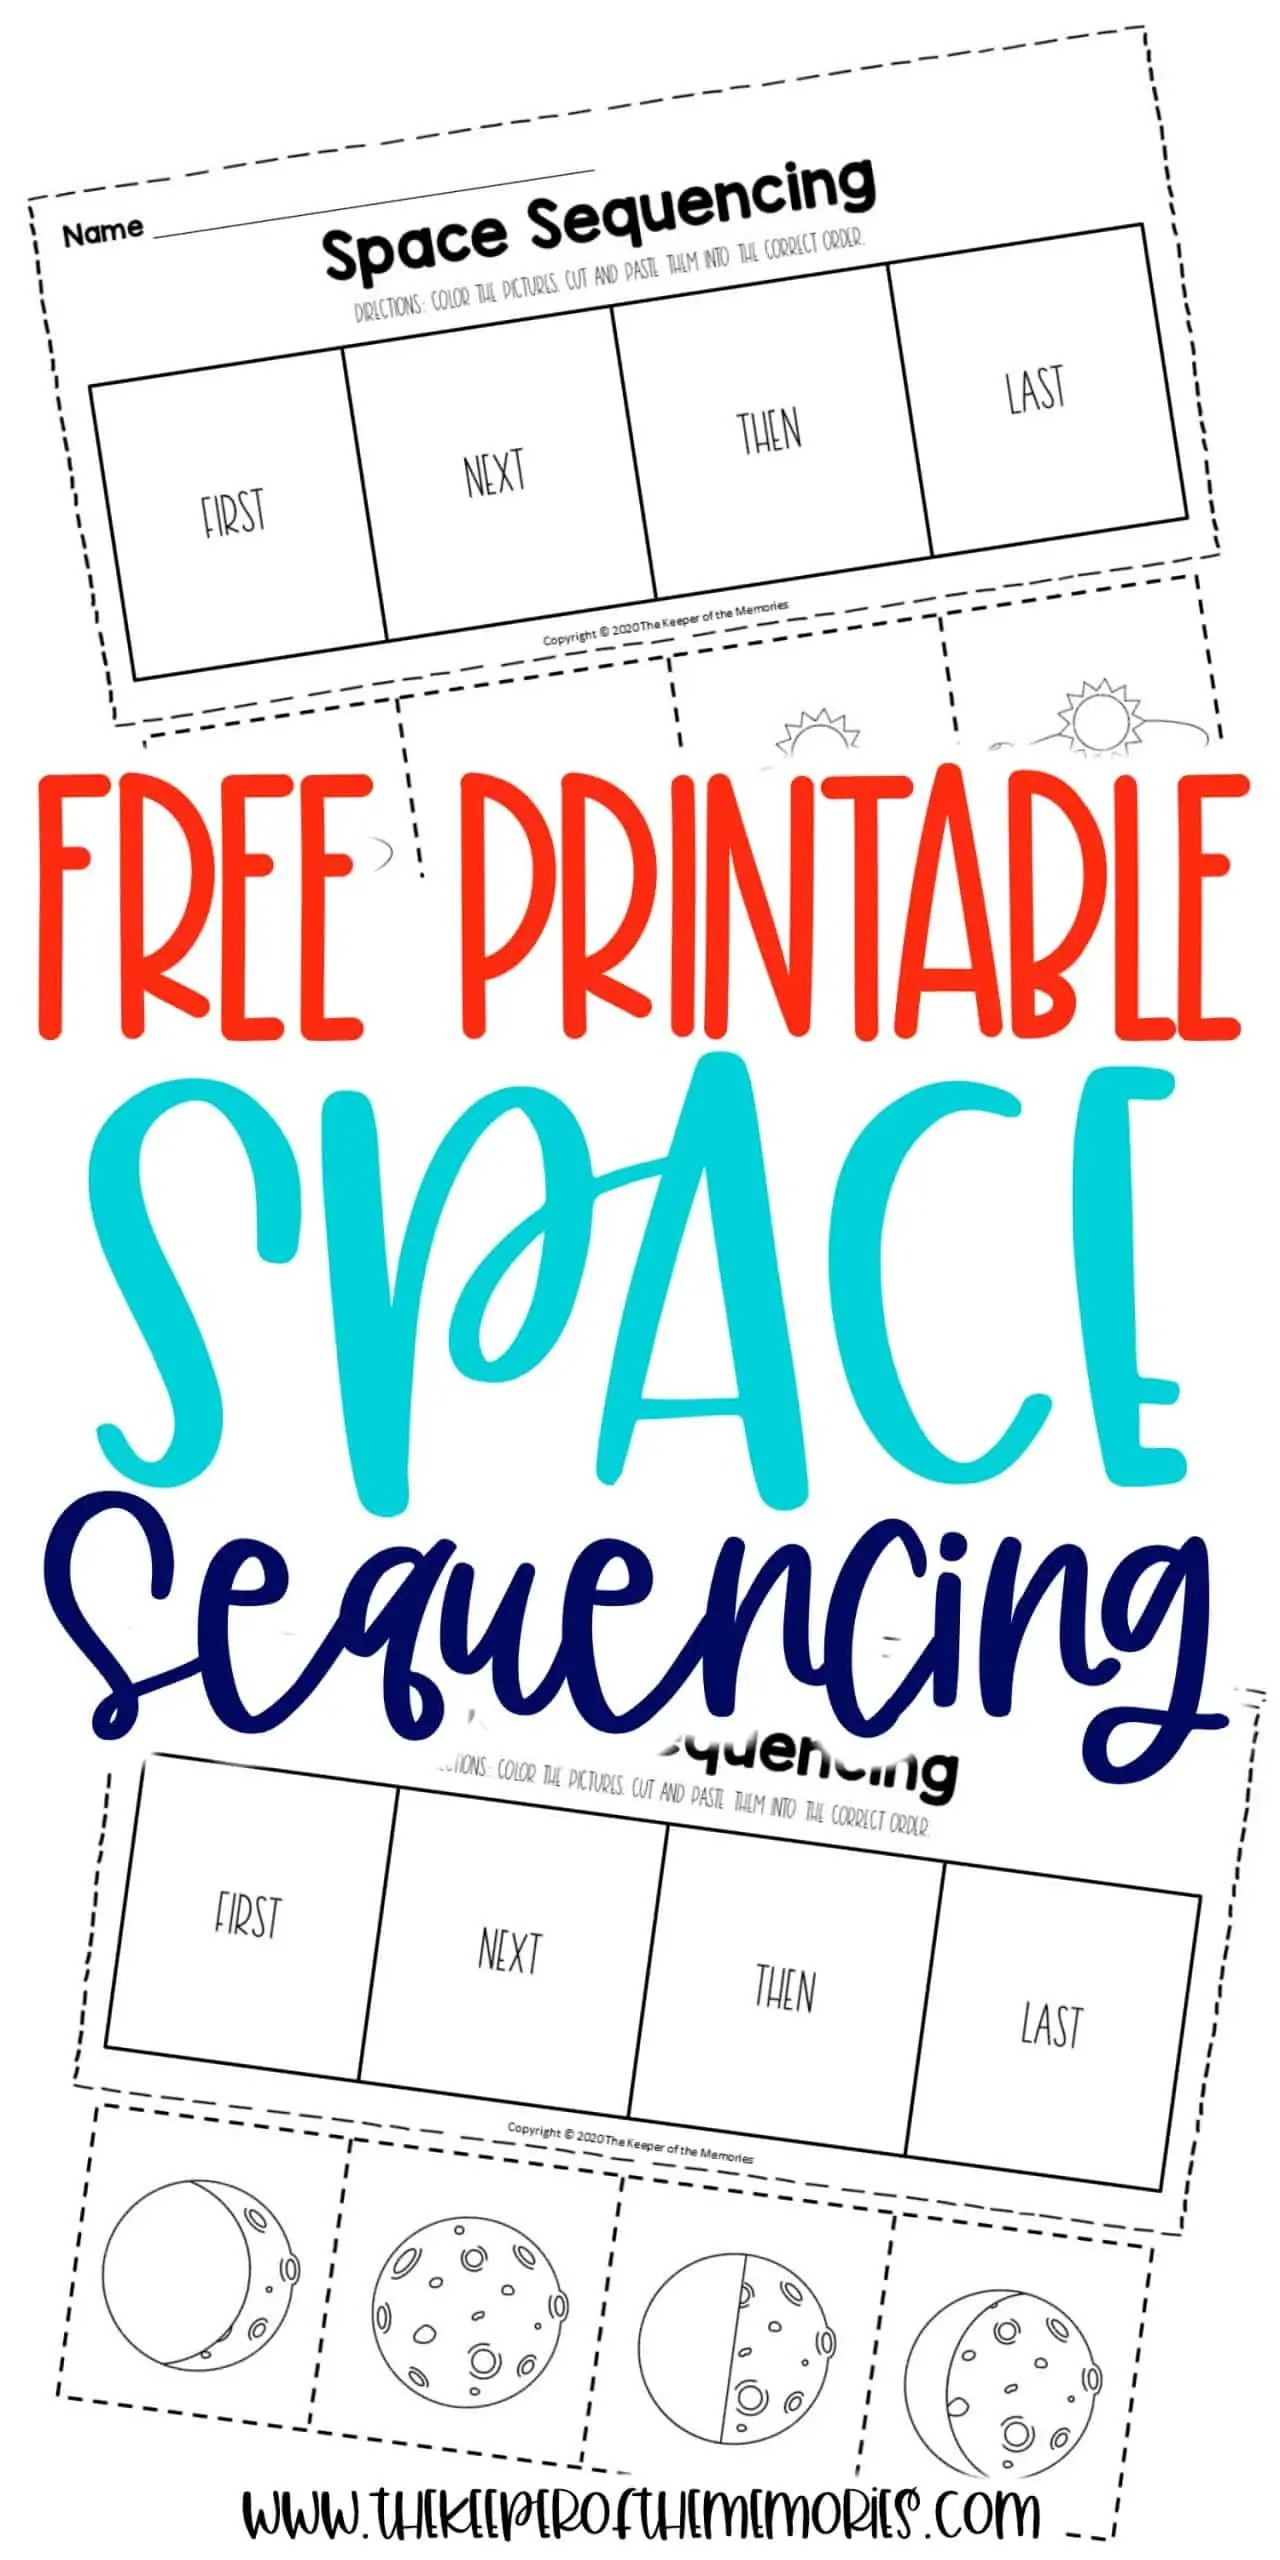 Free Printable Space Sequencing Worksheets